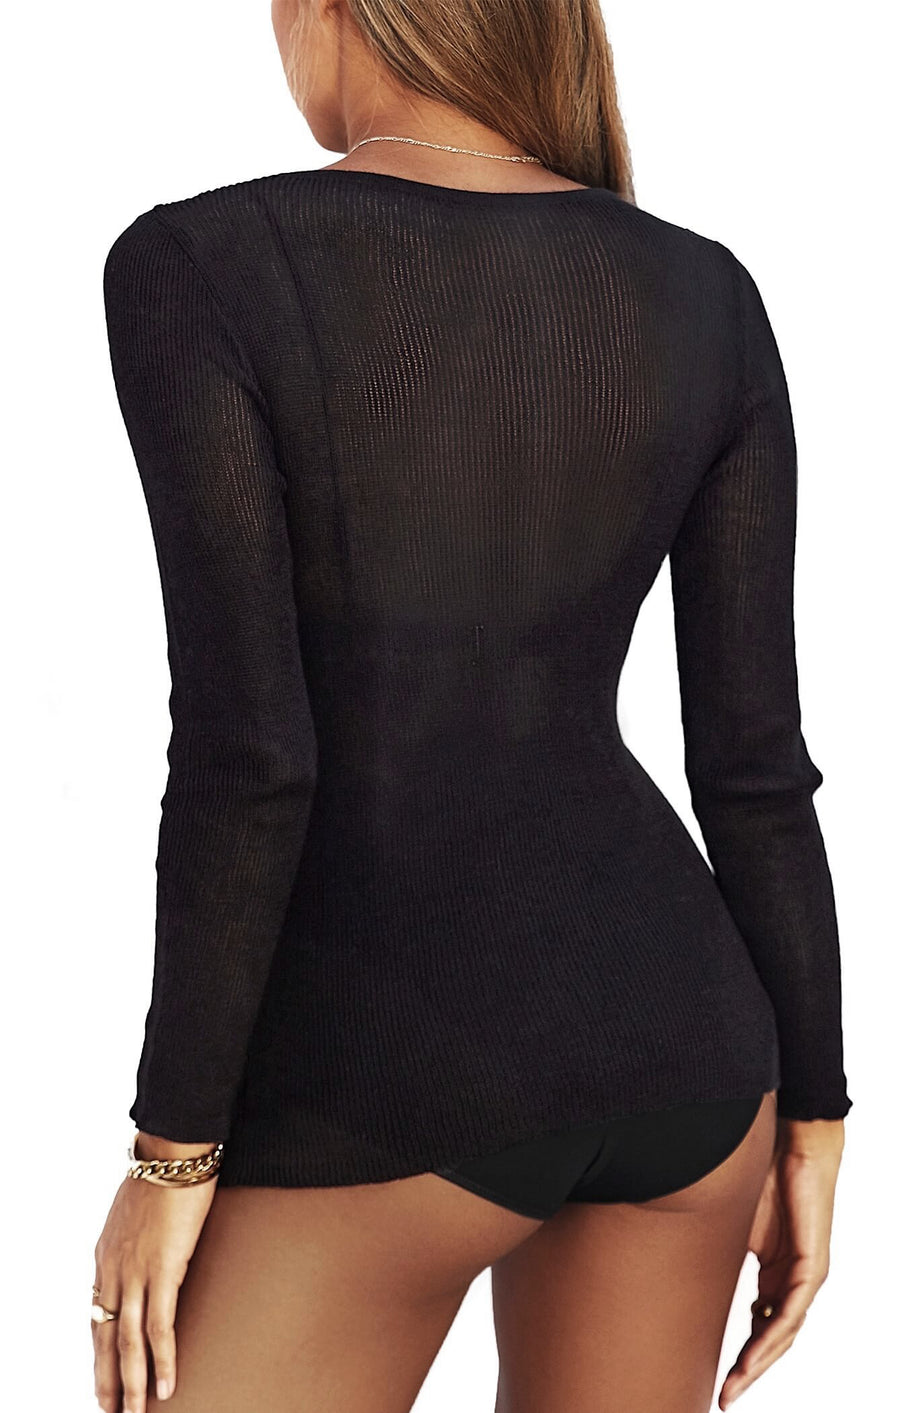 THE KNITTED LONG SLEEVE - BLACK